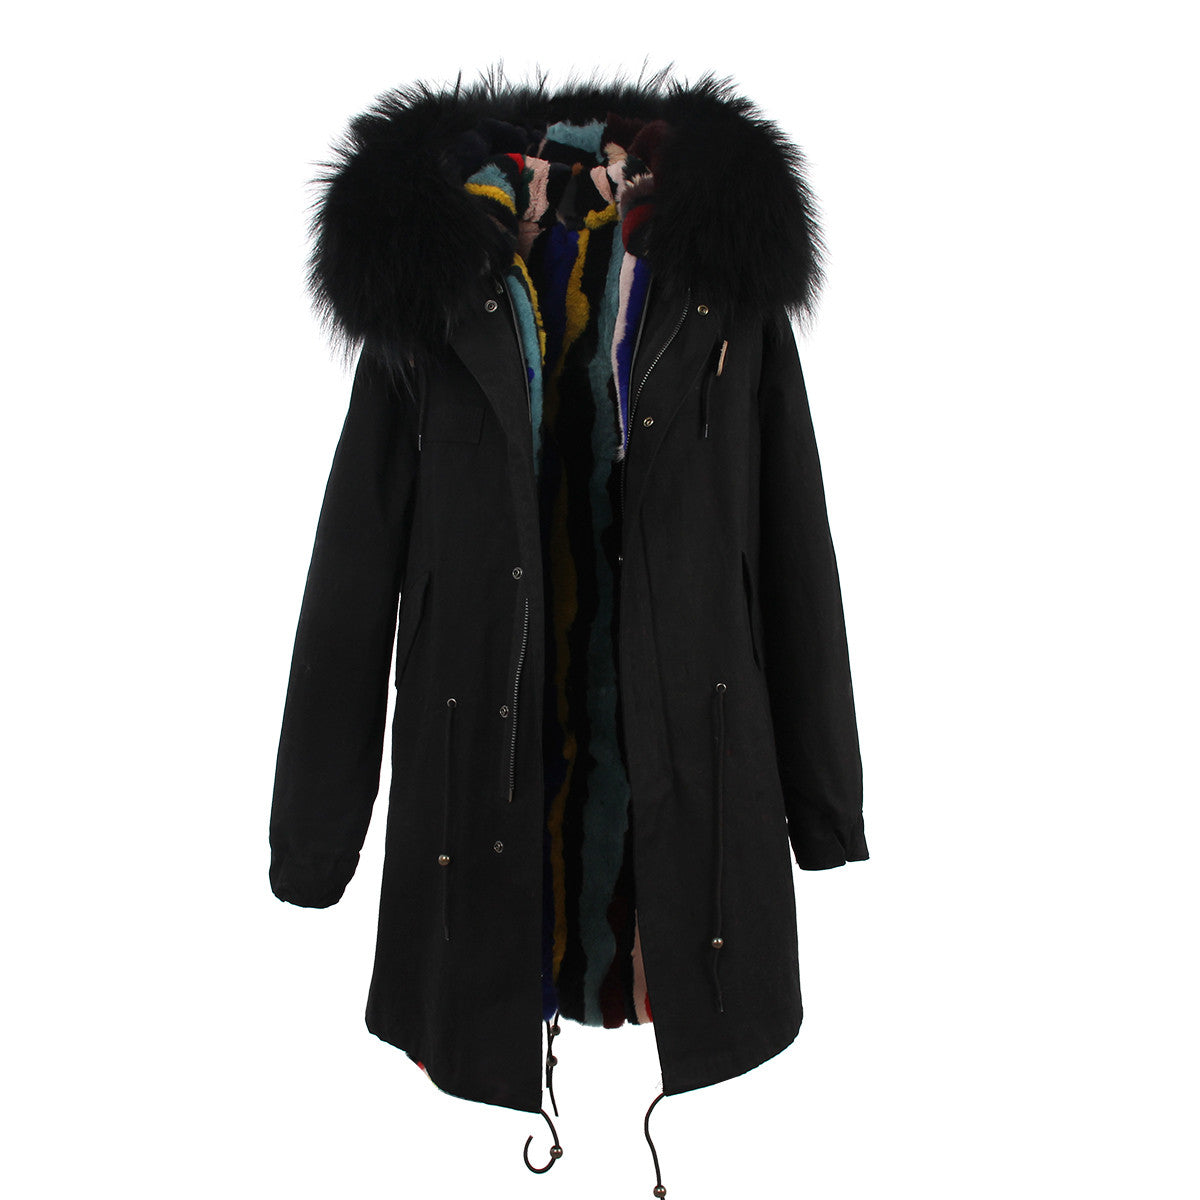 Fashion Women Raccoon Rabbit Fur Coat - All In One Place With Us - 6